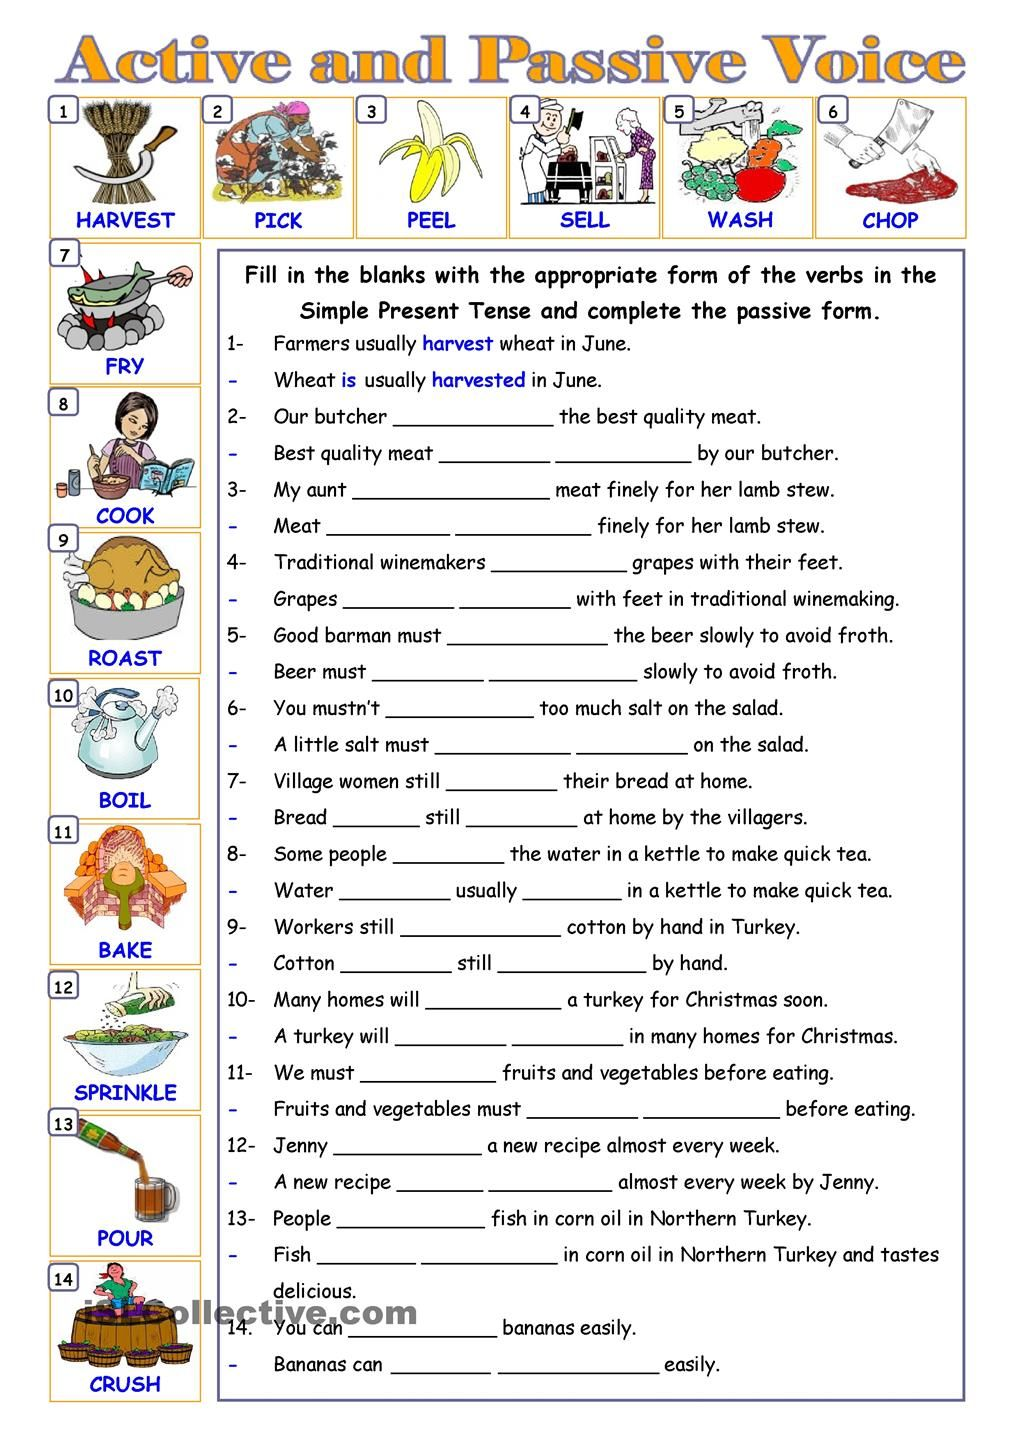 Worksheets Active And Passive Voice Worksheets active and passive voice exercise